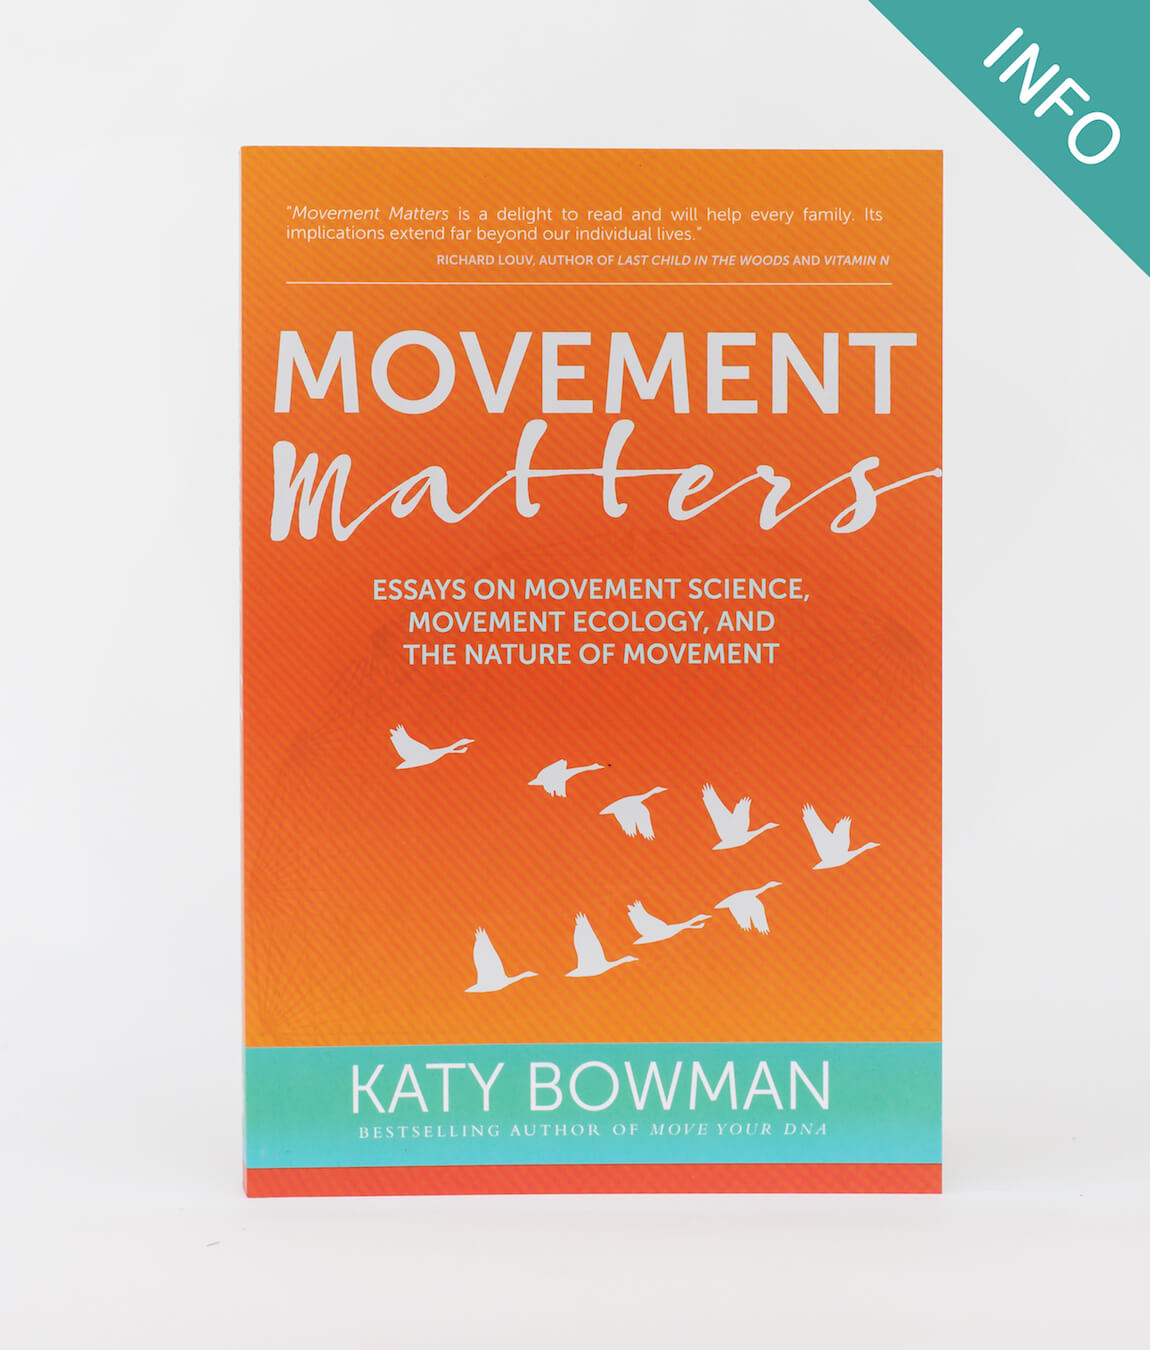 Movement Matters Katy Bowman